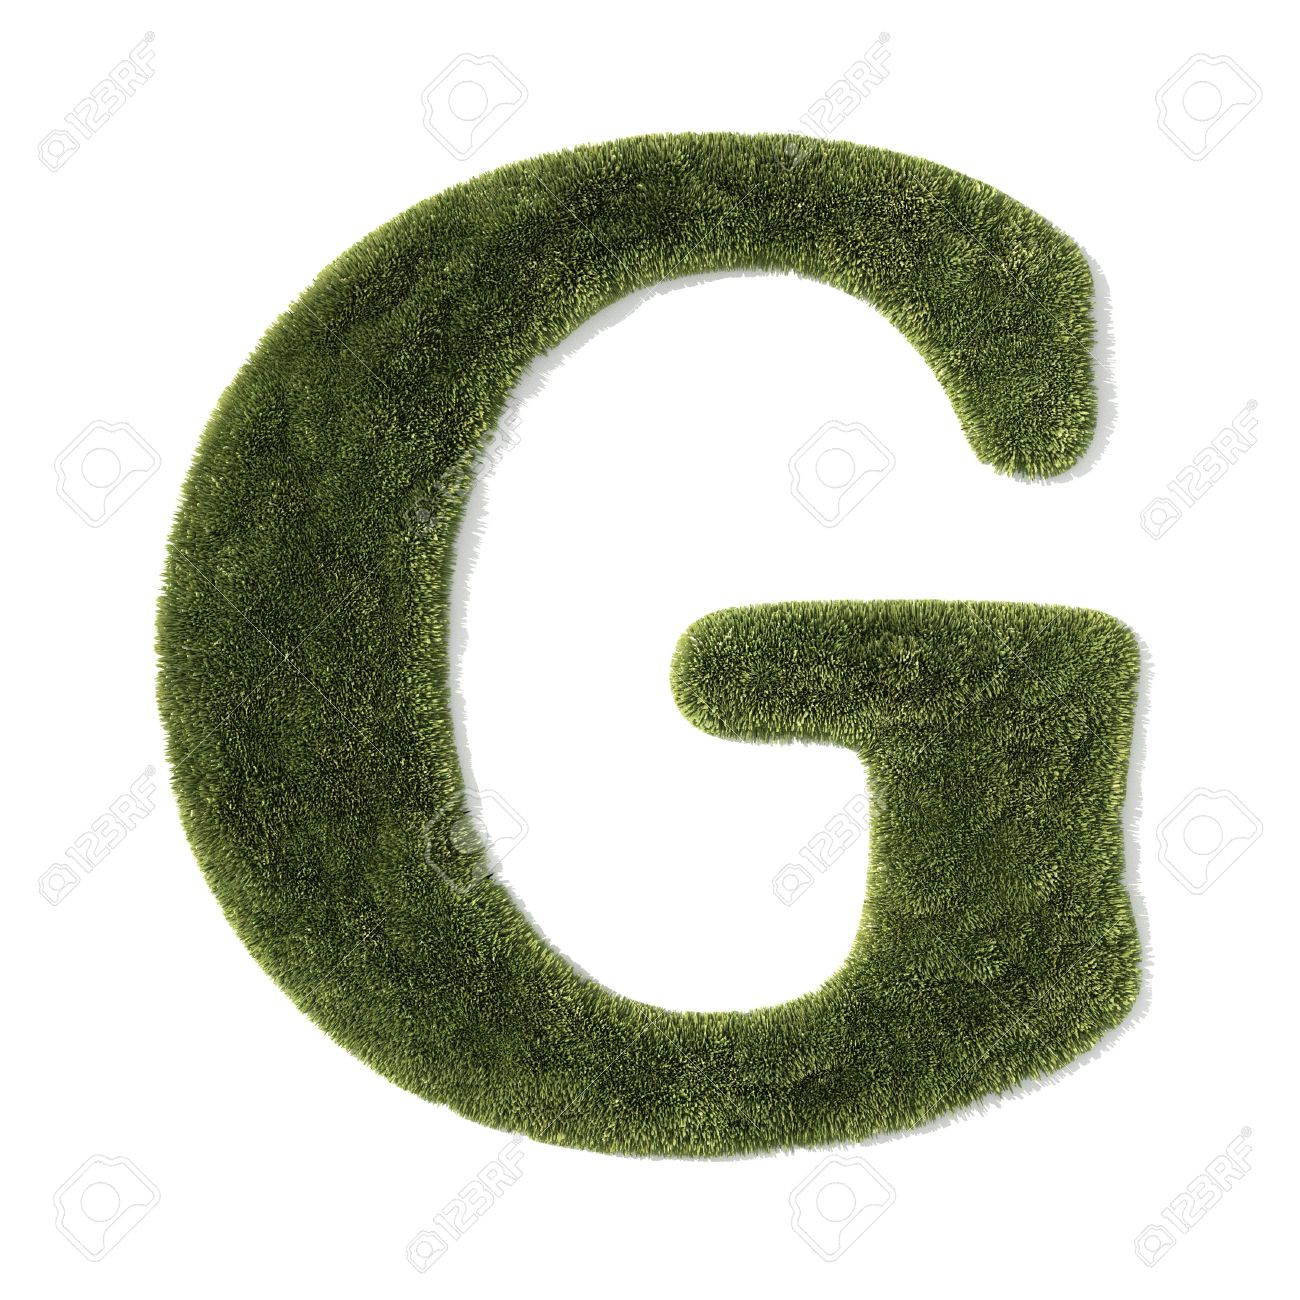 Worksheet Letters G grass font letter g stock photo picture and royalty free image g